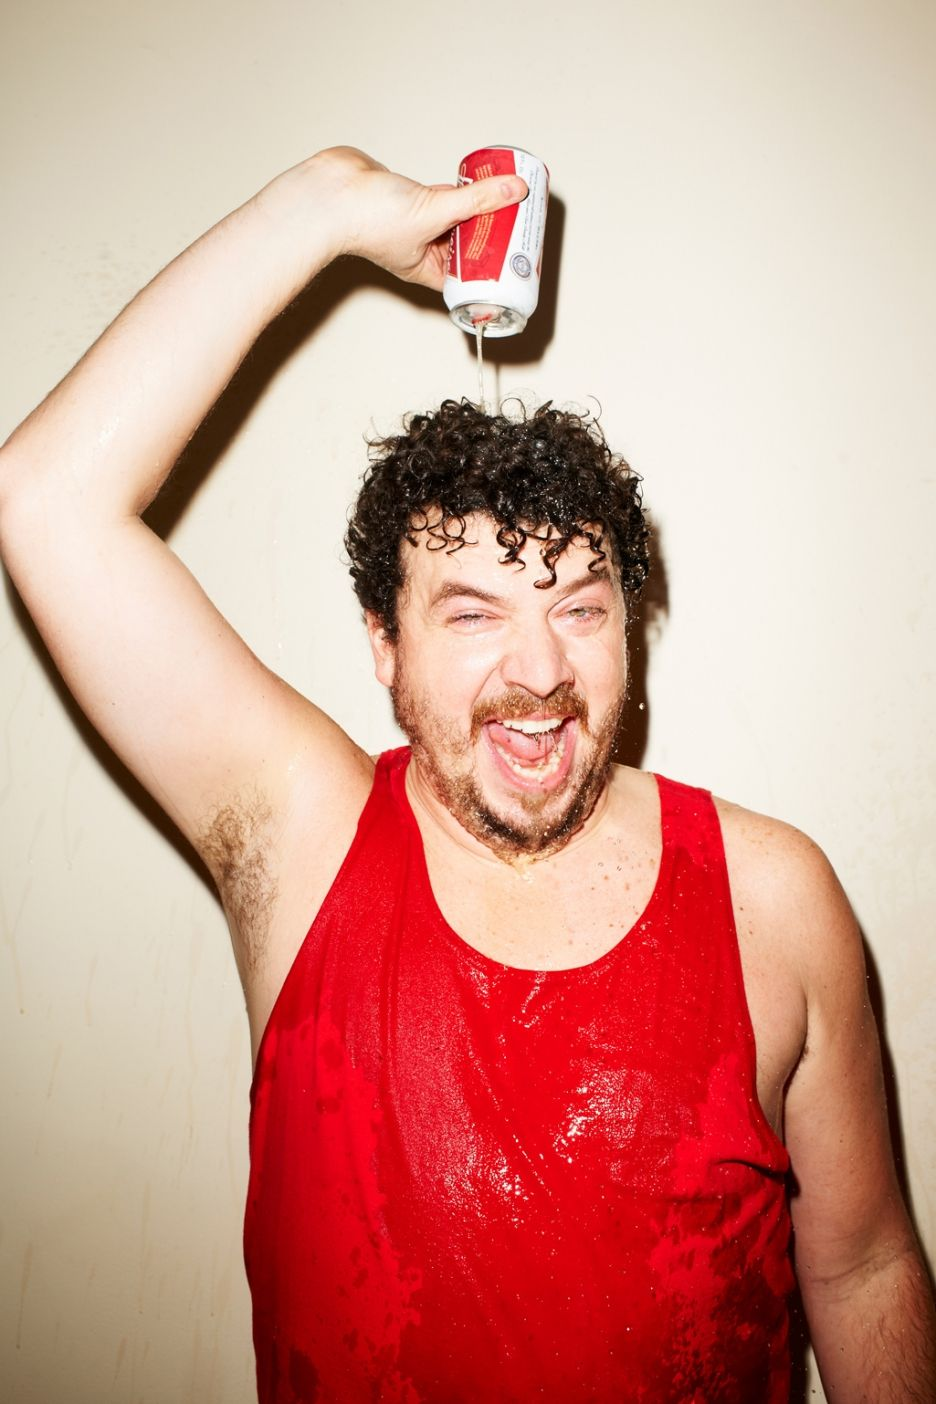 danny mcbride official twitter